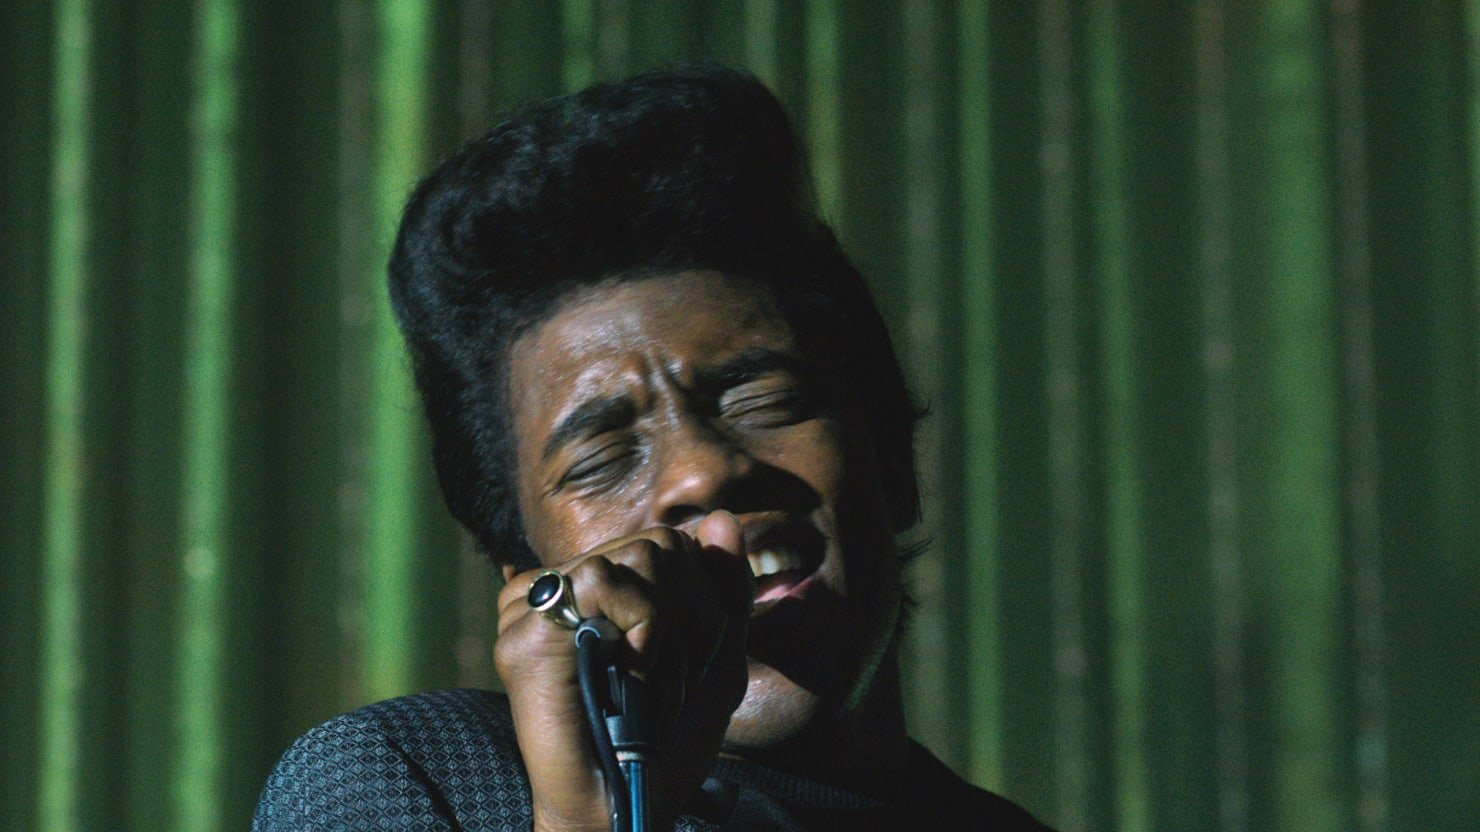 'Get On Up' Star Chadwick Boseman on Becoming James Brown—With A Little Help From Mick Jagger